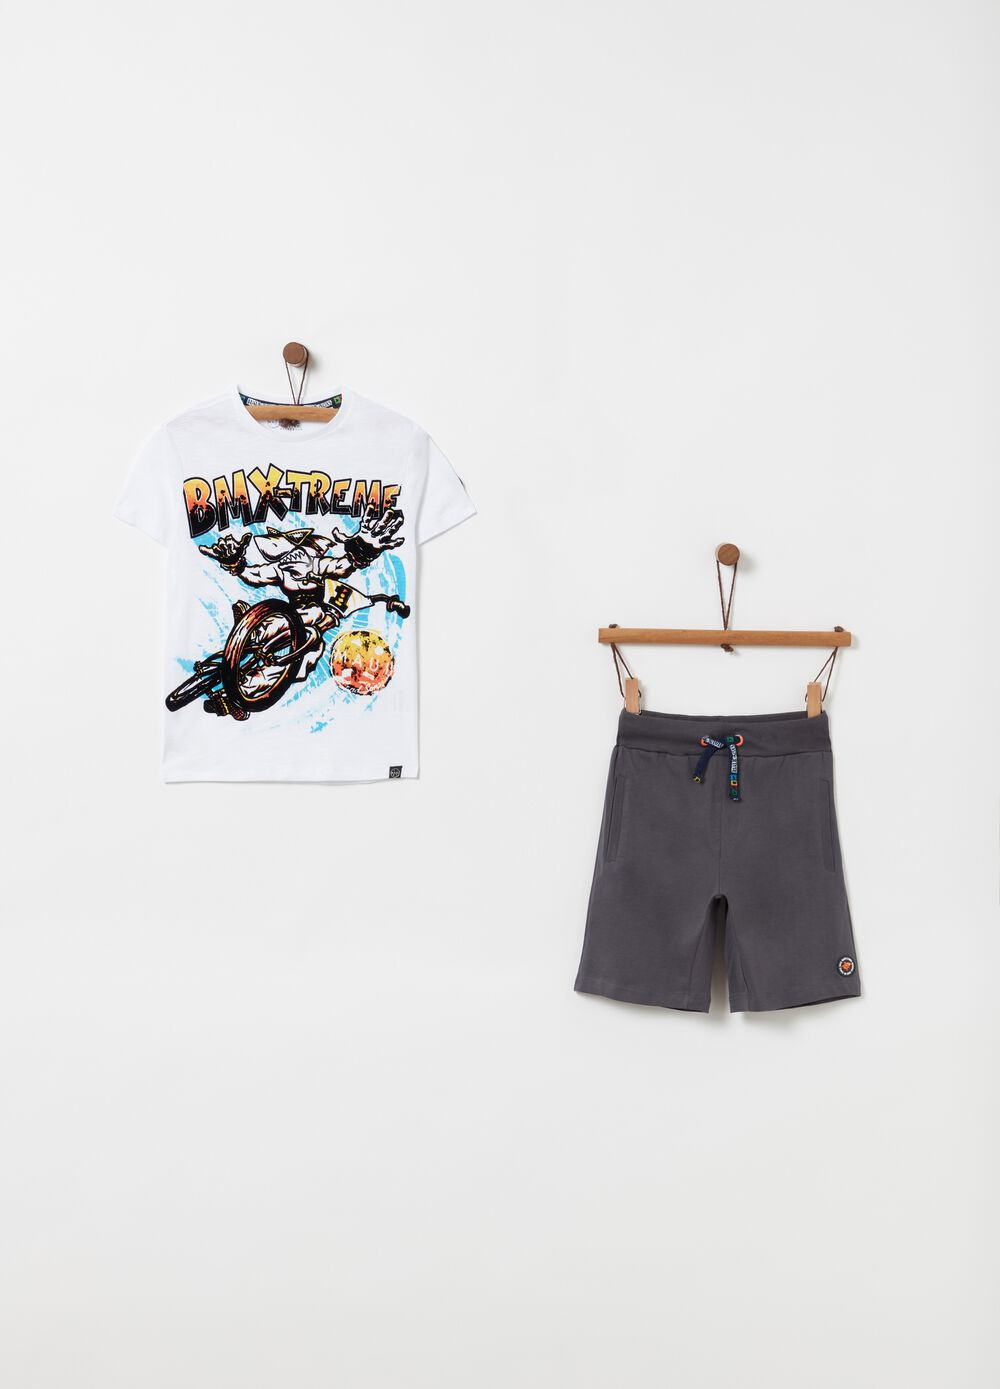 T-shirt and shorts jogging set by Maui and Sons